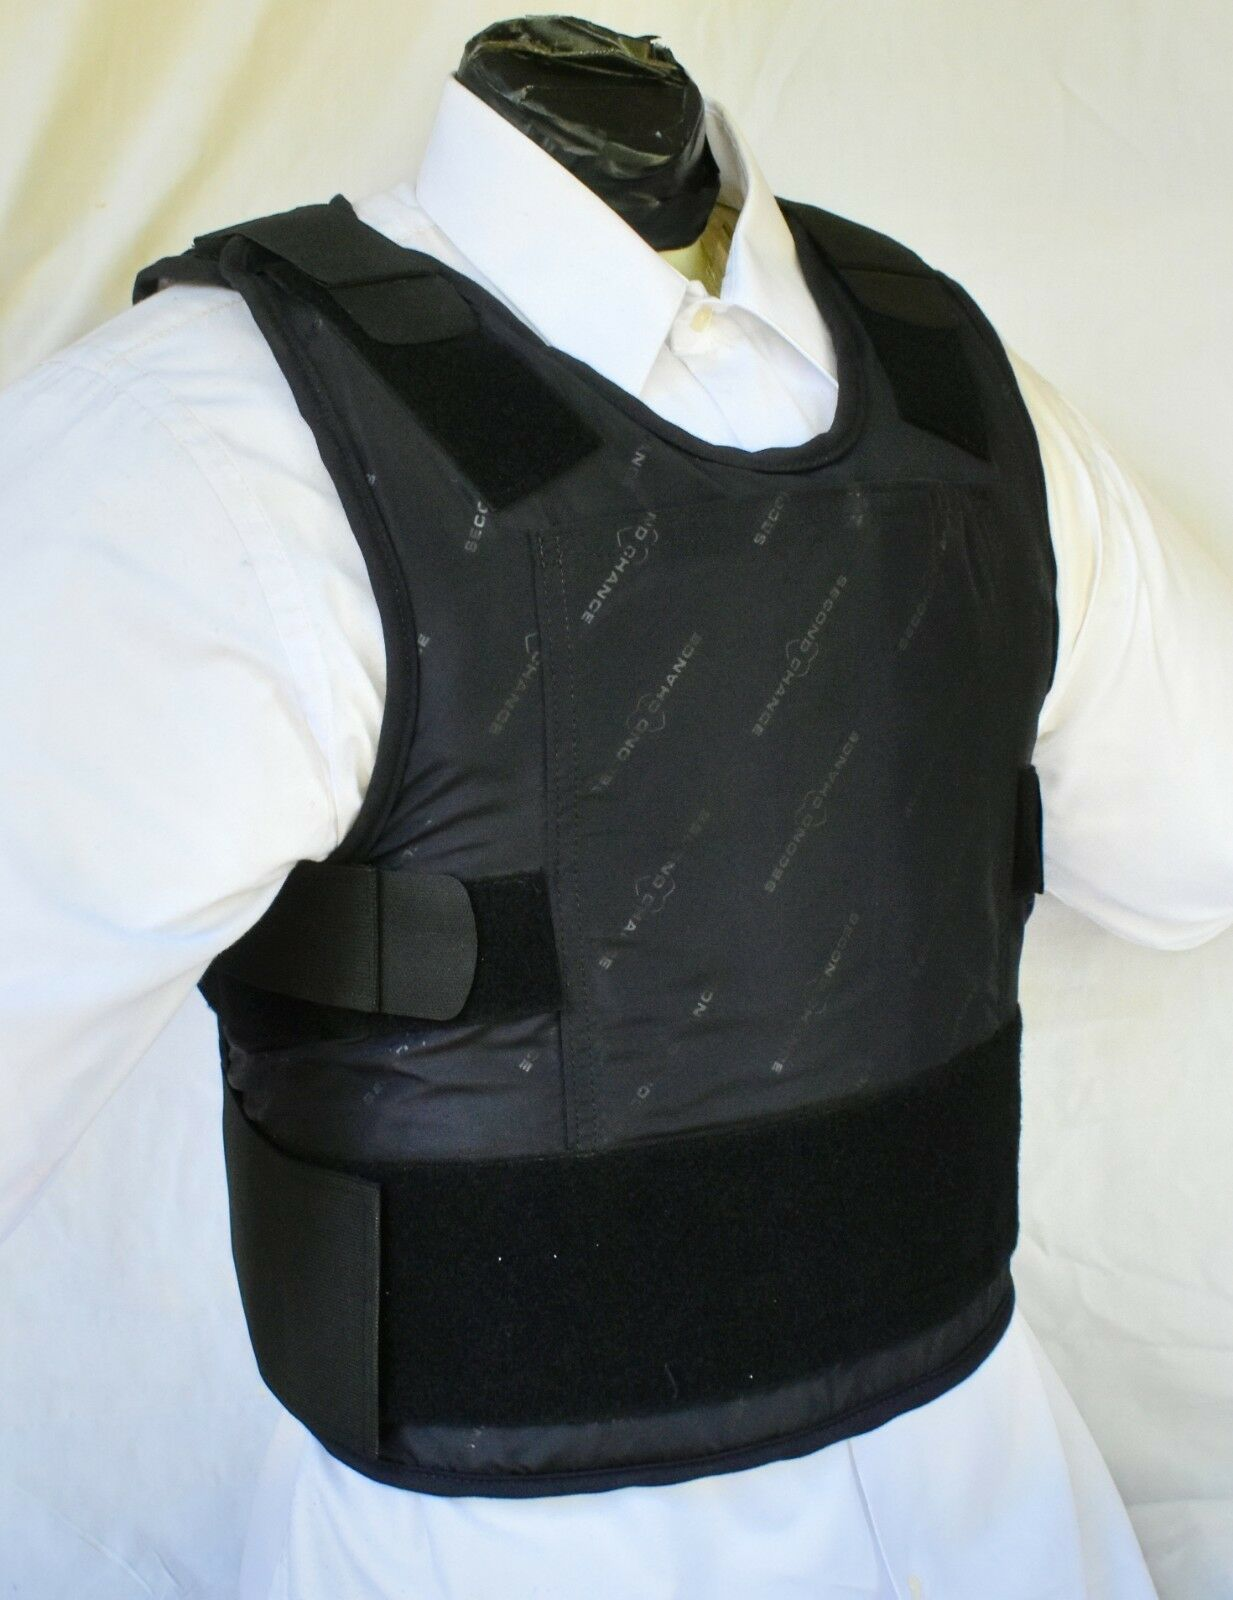 4XL IIIA Lo Vis   Concealable Body Armor Carrier BulletProof Vest with Inserts